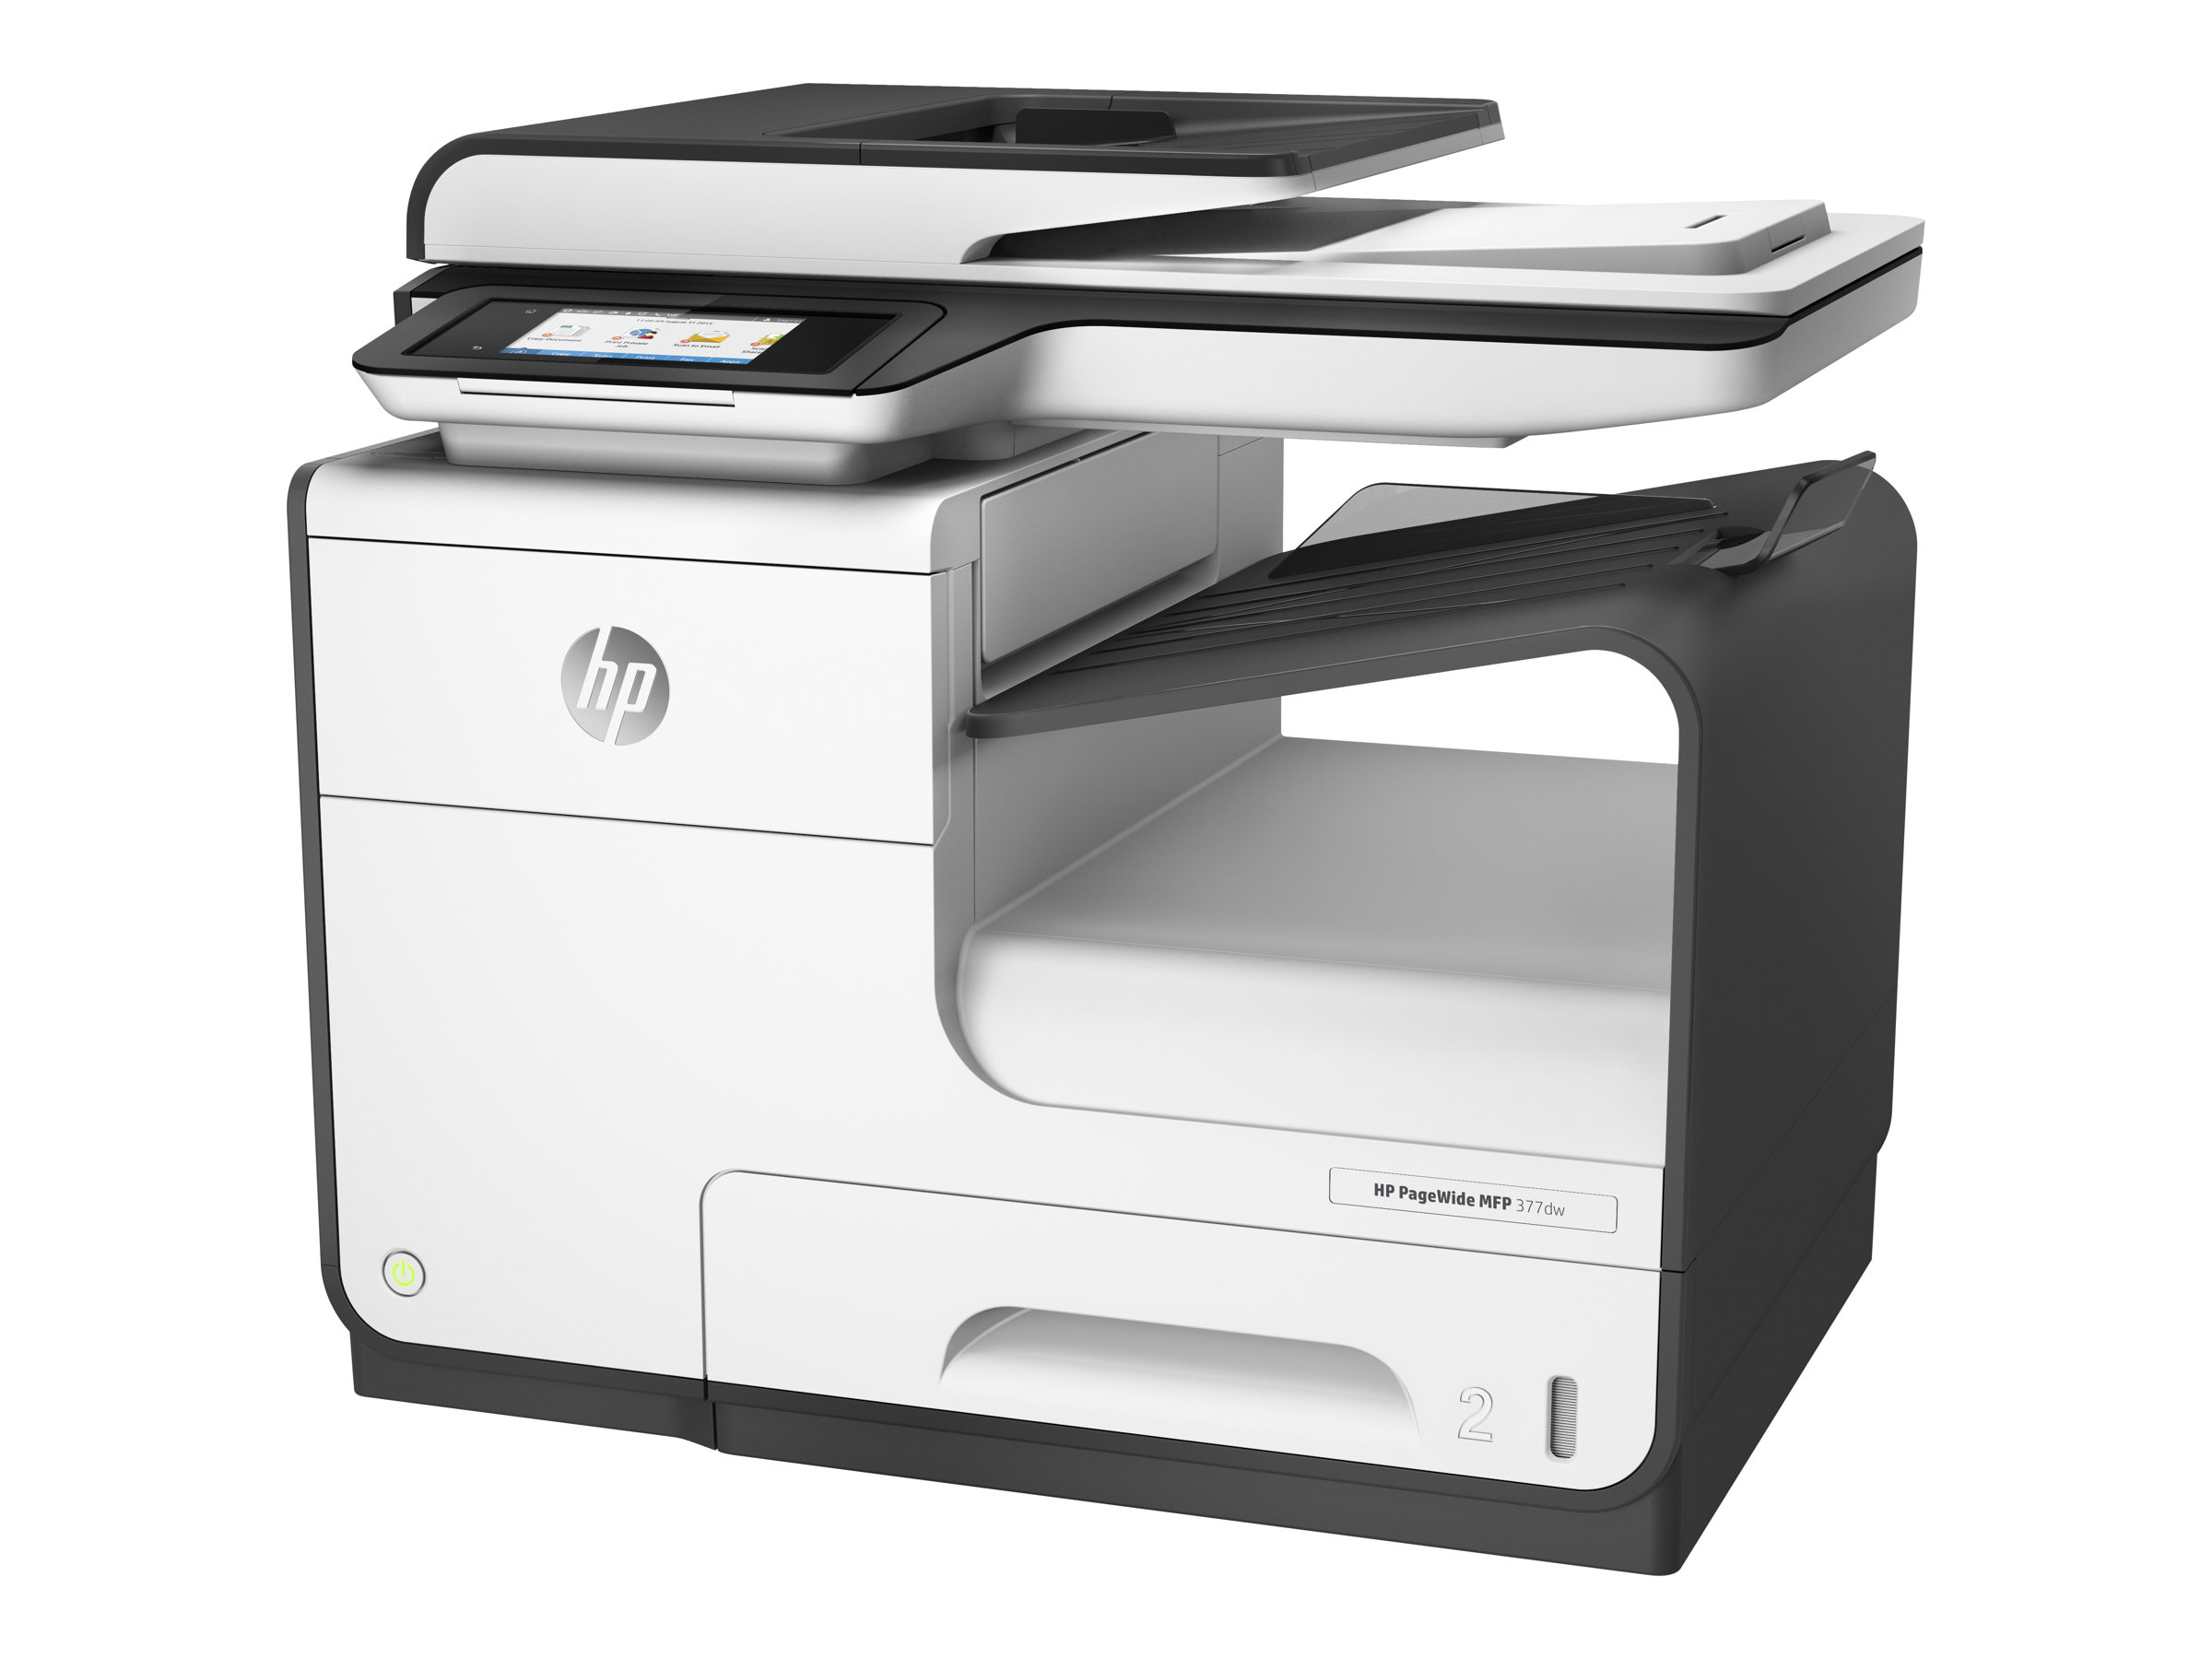 HP PageWide MFP 377dw - Multifunktionsdrucker - Farbe - Tintenstrahl - Legal (216 x 356 mm) (Original) - A4/Legal (Medien)